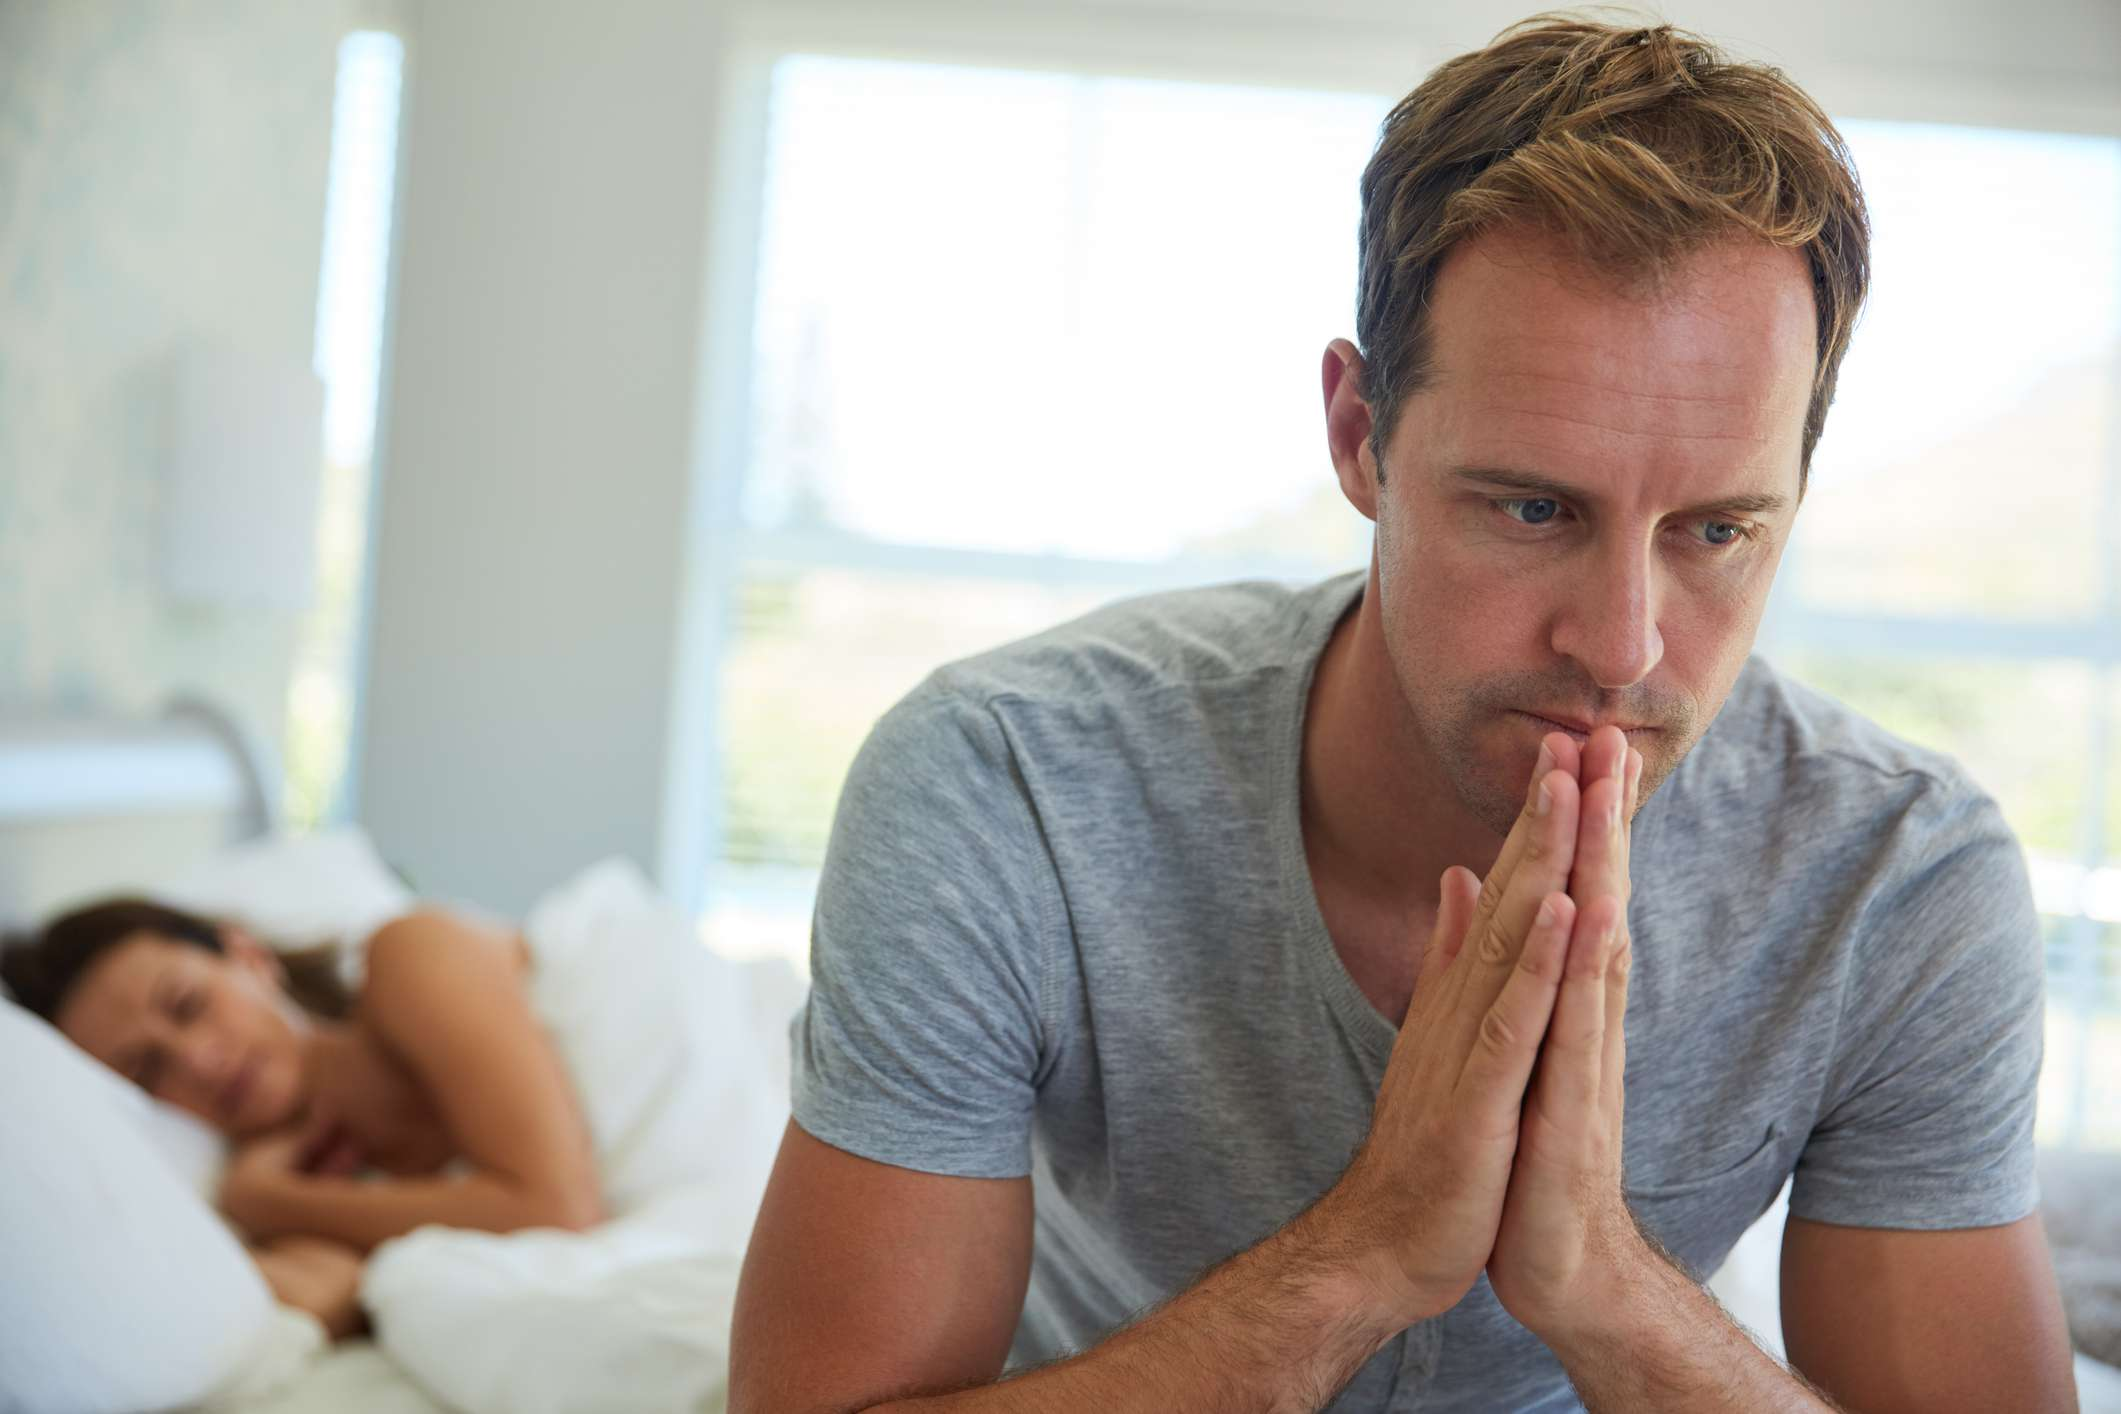 Man looking distressed on edge of bed